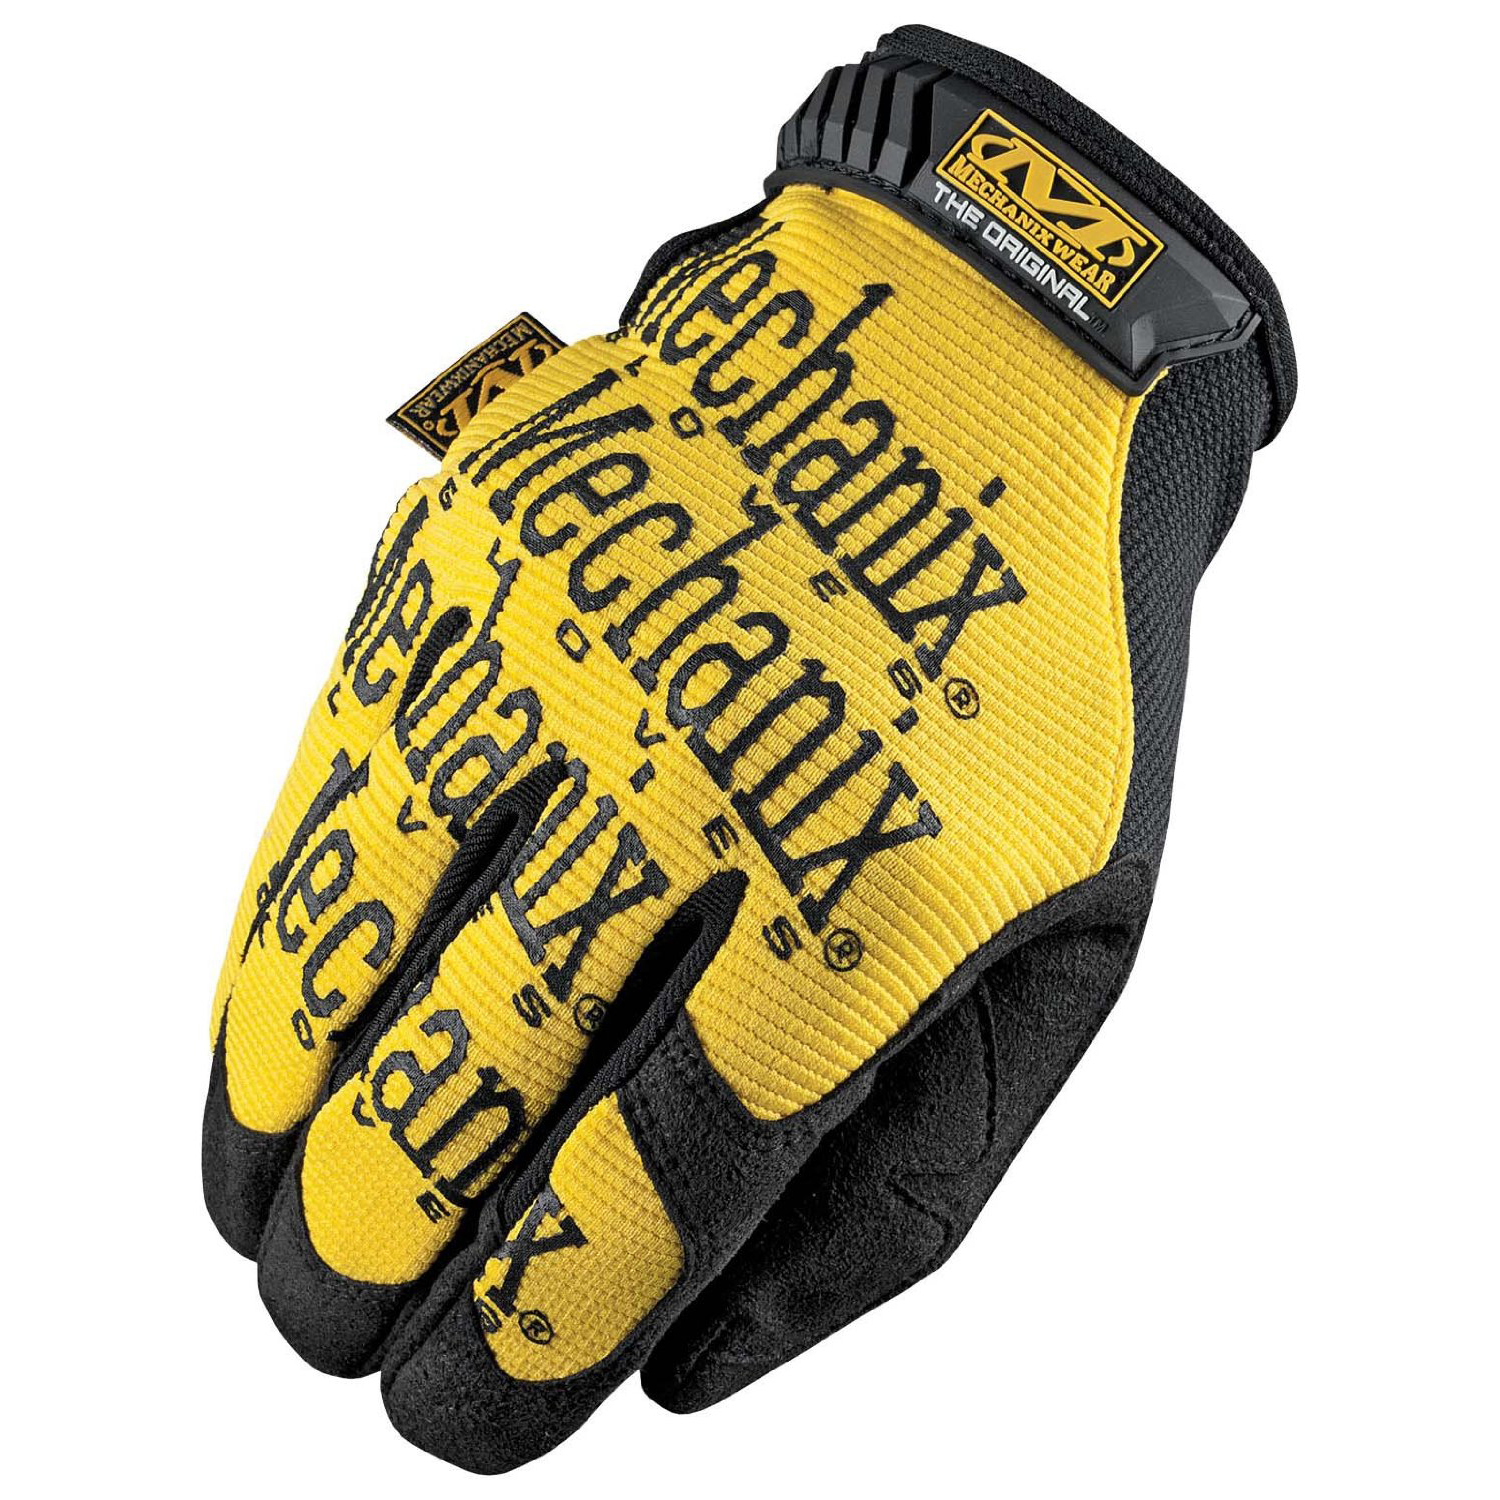 R3 Safety MG-01-008 The Original Gloves, Yellow, Small